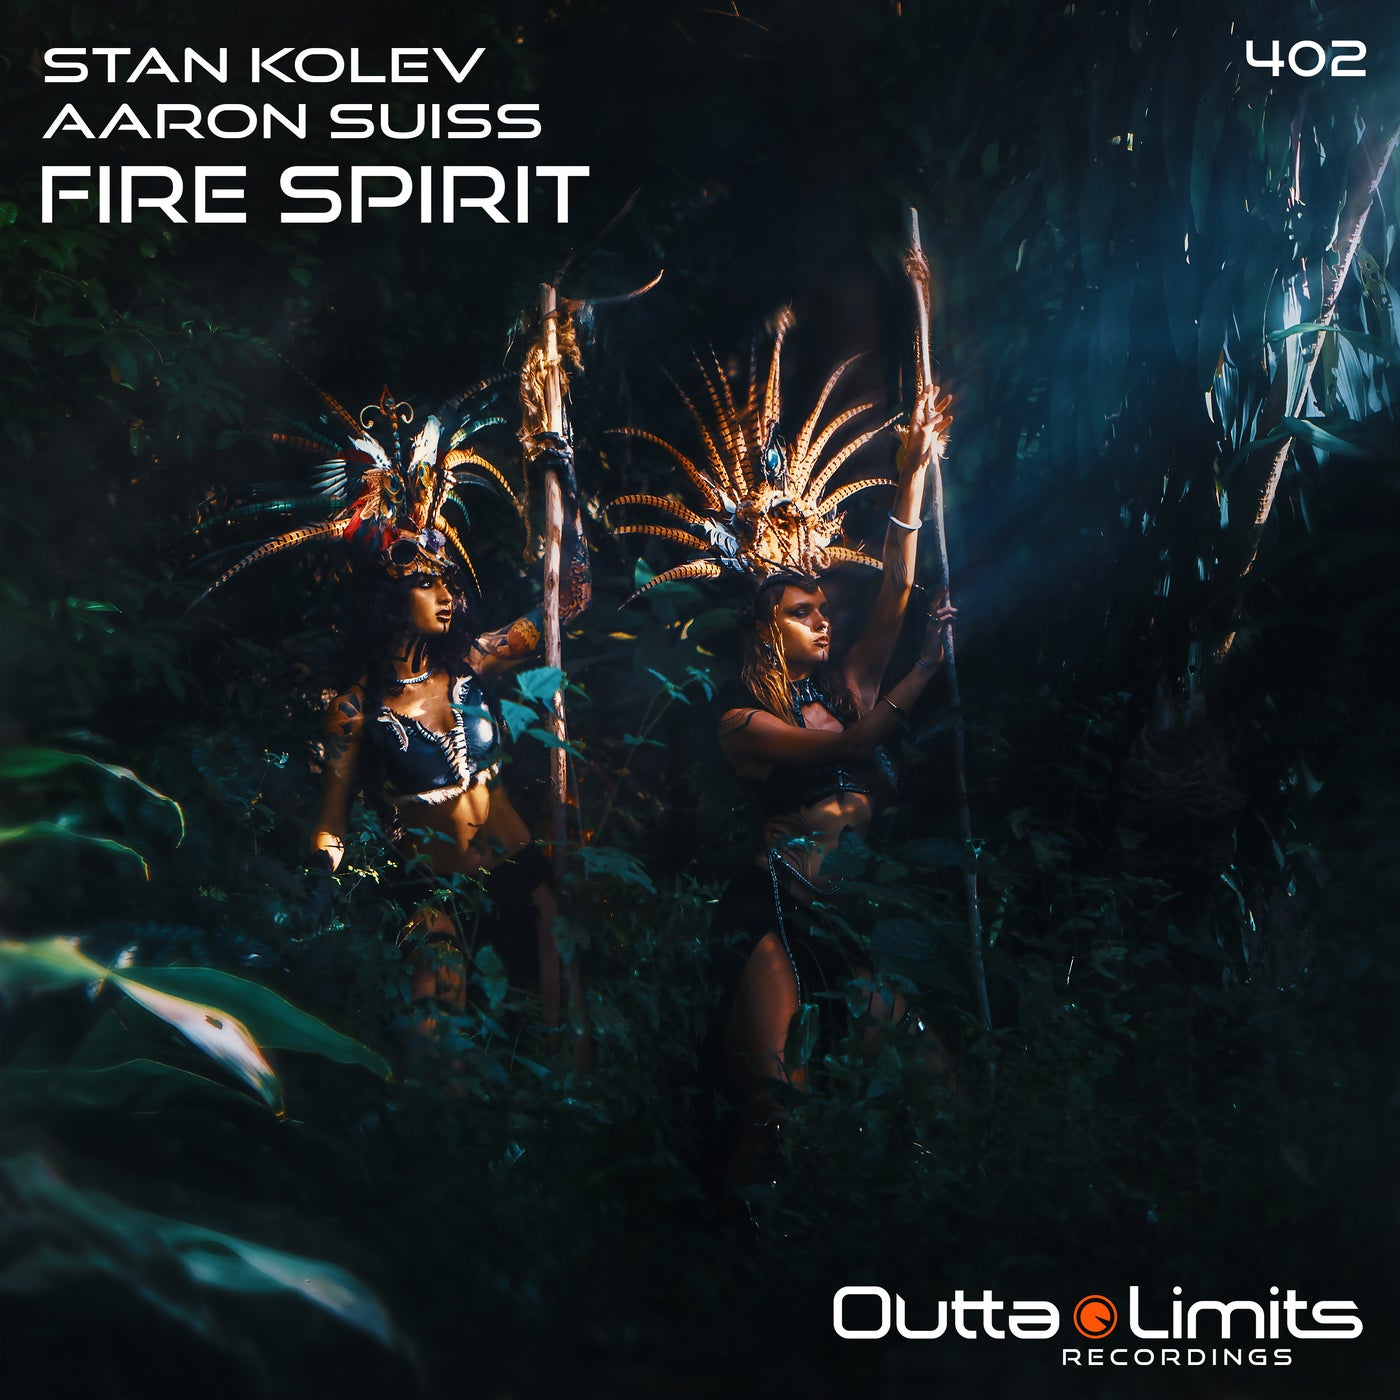 Fire Spirit (Original Mix)